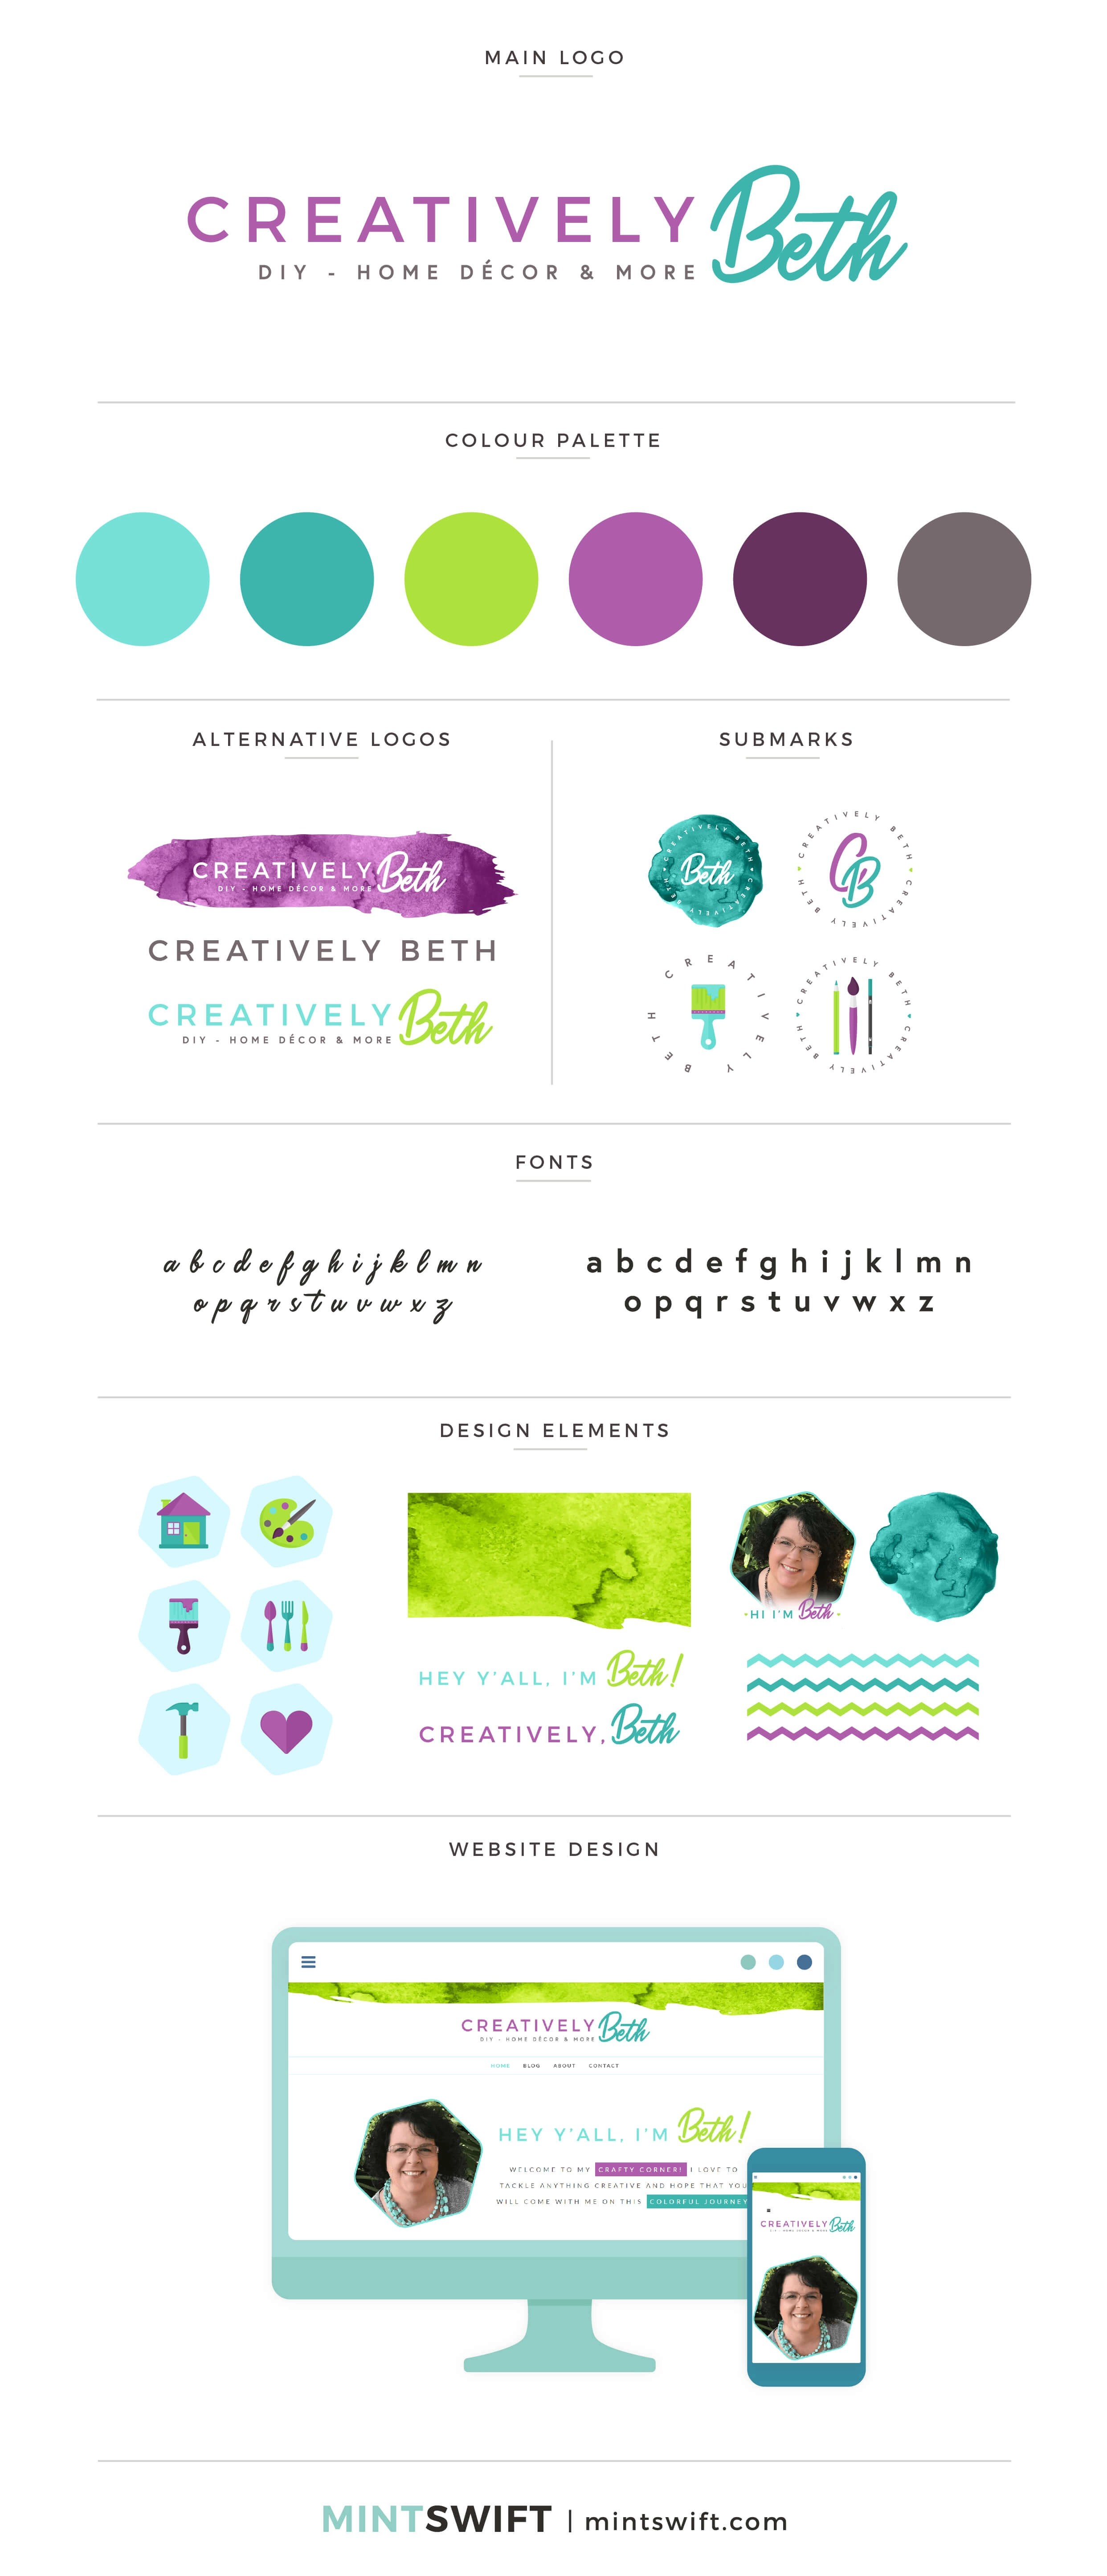 Creatively Beth - Brand Board - Brand & Website - MintSwift